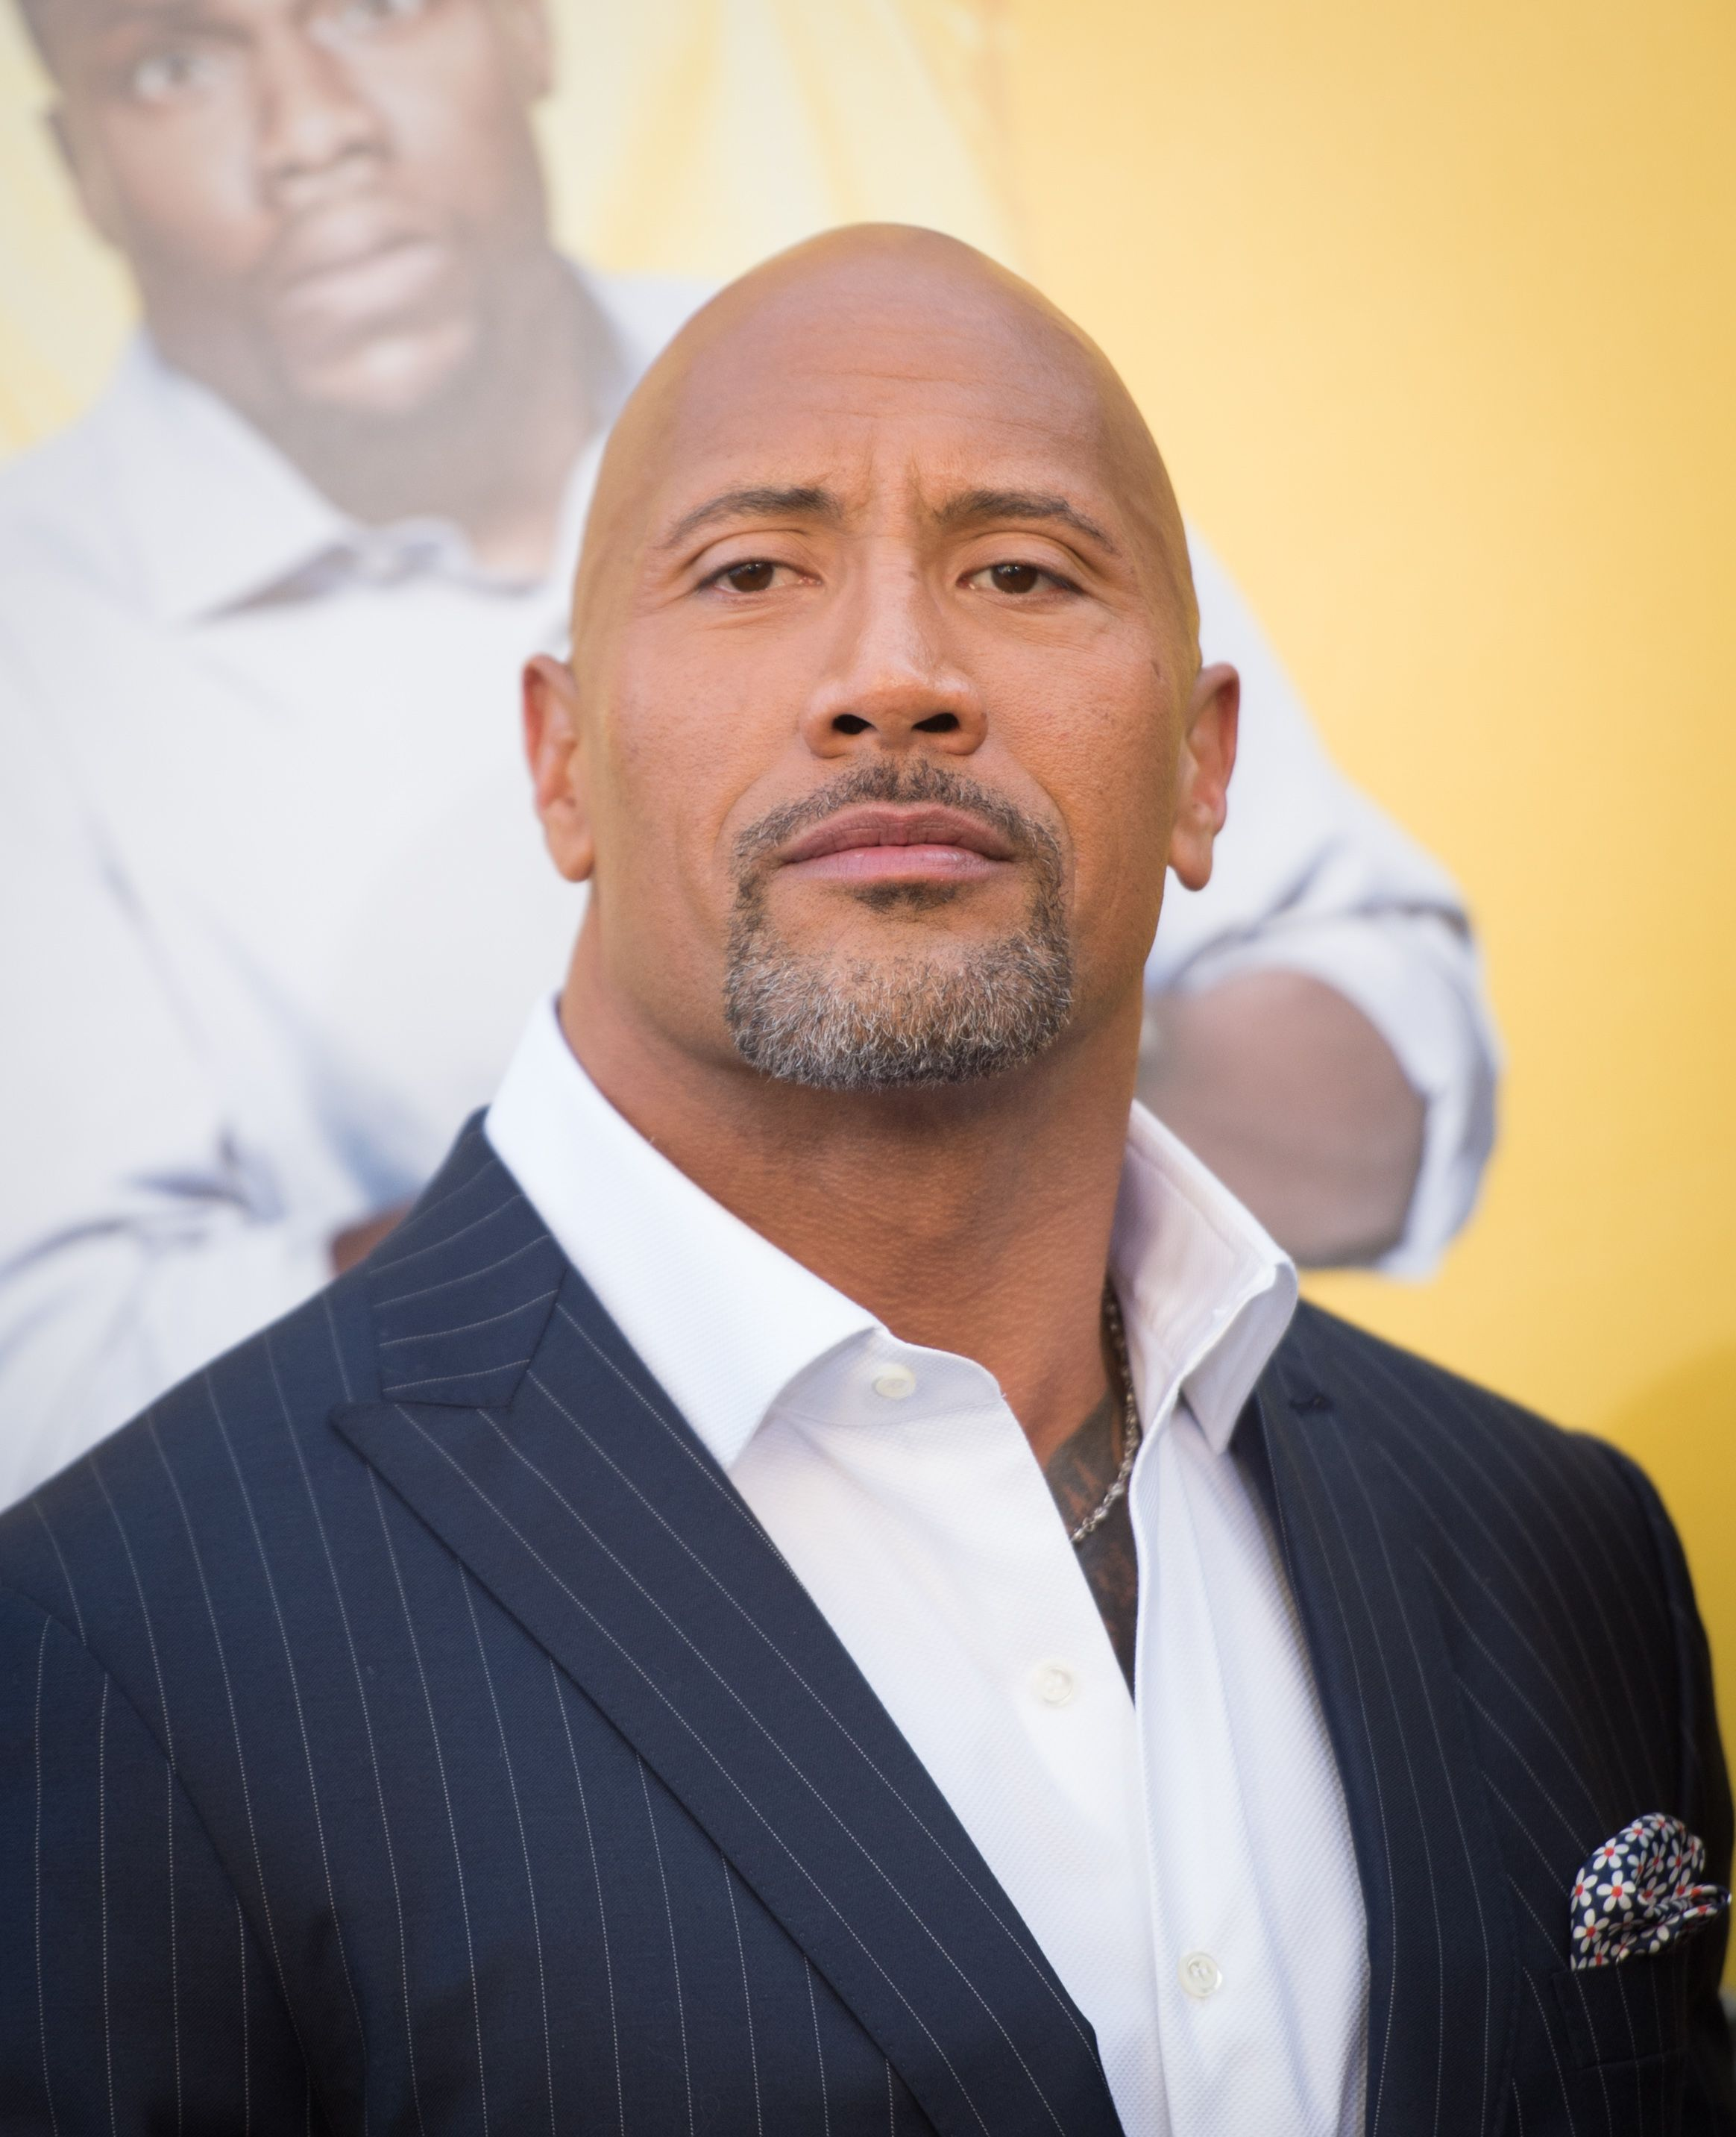 """Actor Dwayne Johnson at the premiere of Warner Bros. Pictures' """"Central Intelligence"""" at Westwood Village Theatre on June 10, 2016 